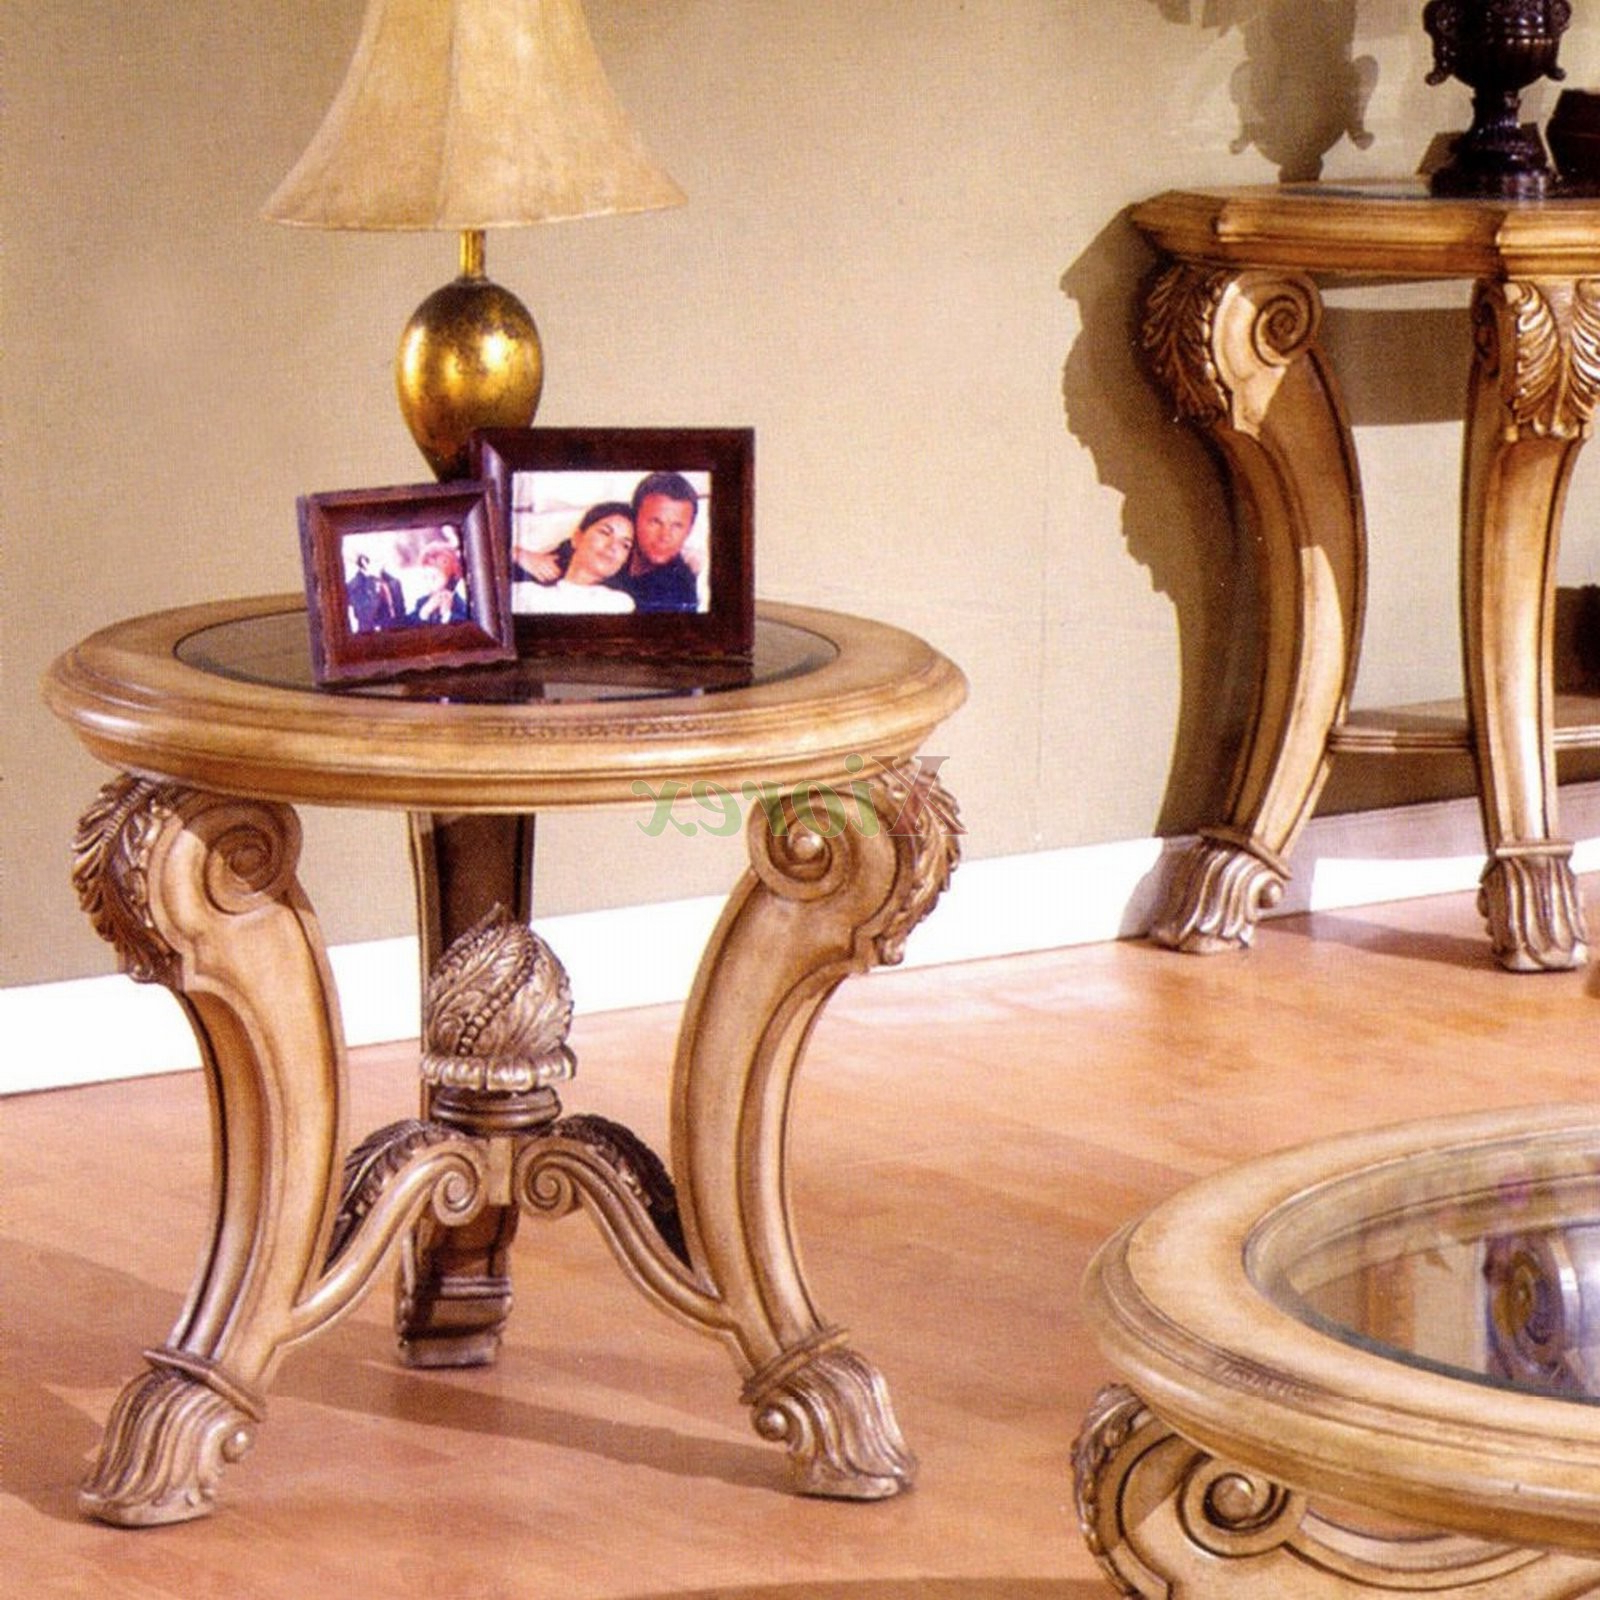 Carved Wooden Round Coffee Table Ideas Corvi Glass Top End Tables Throughout Trendy Round Carved Wood Coffee Tables (View 6 of 20)